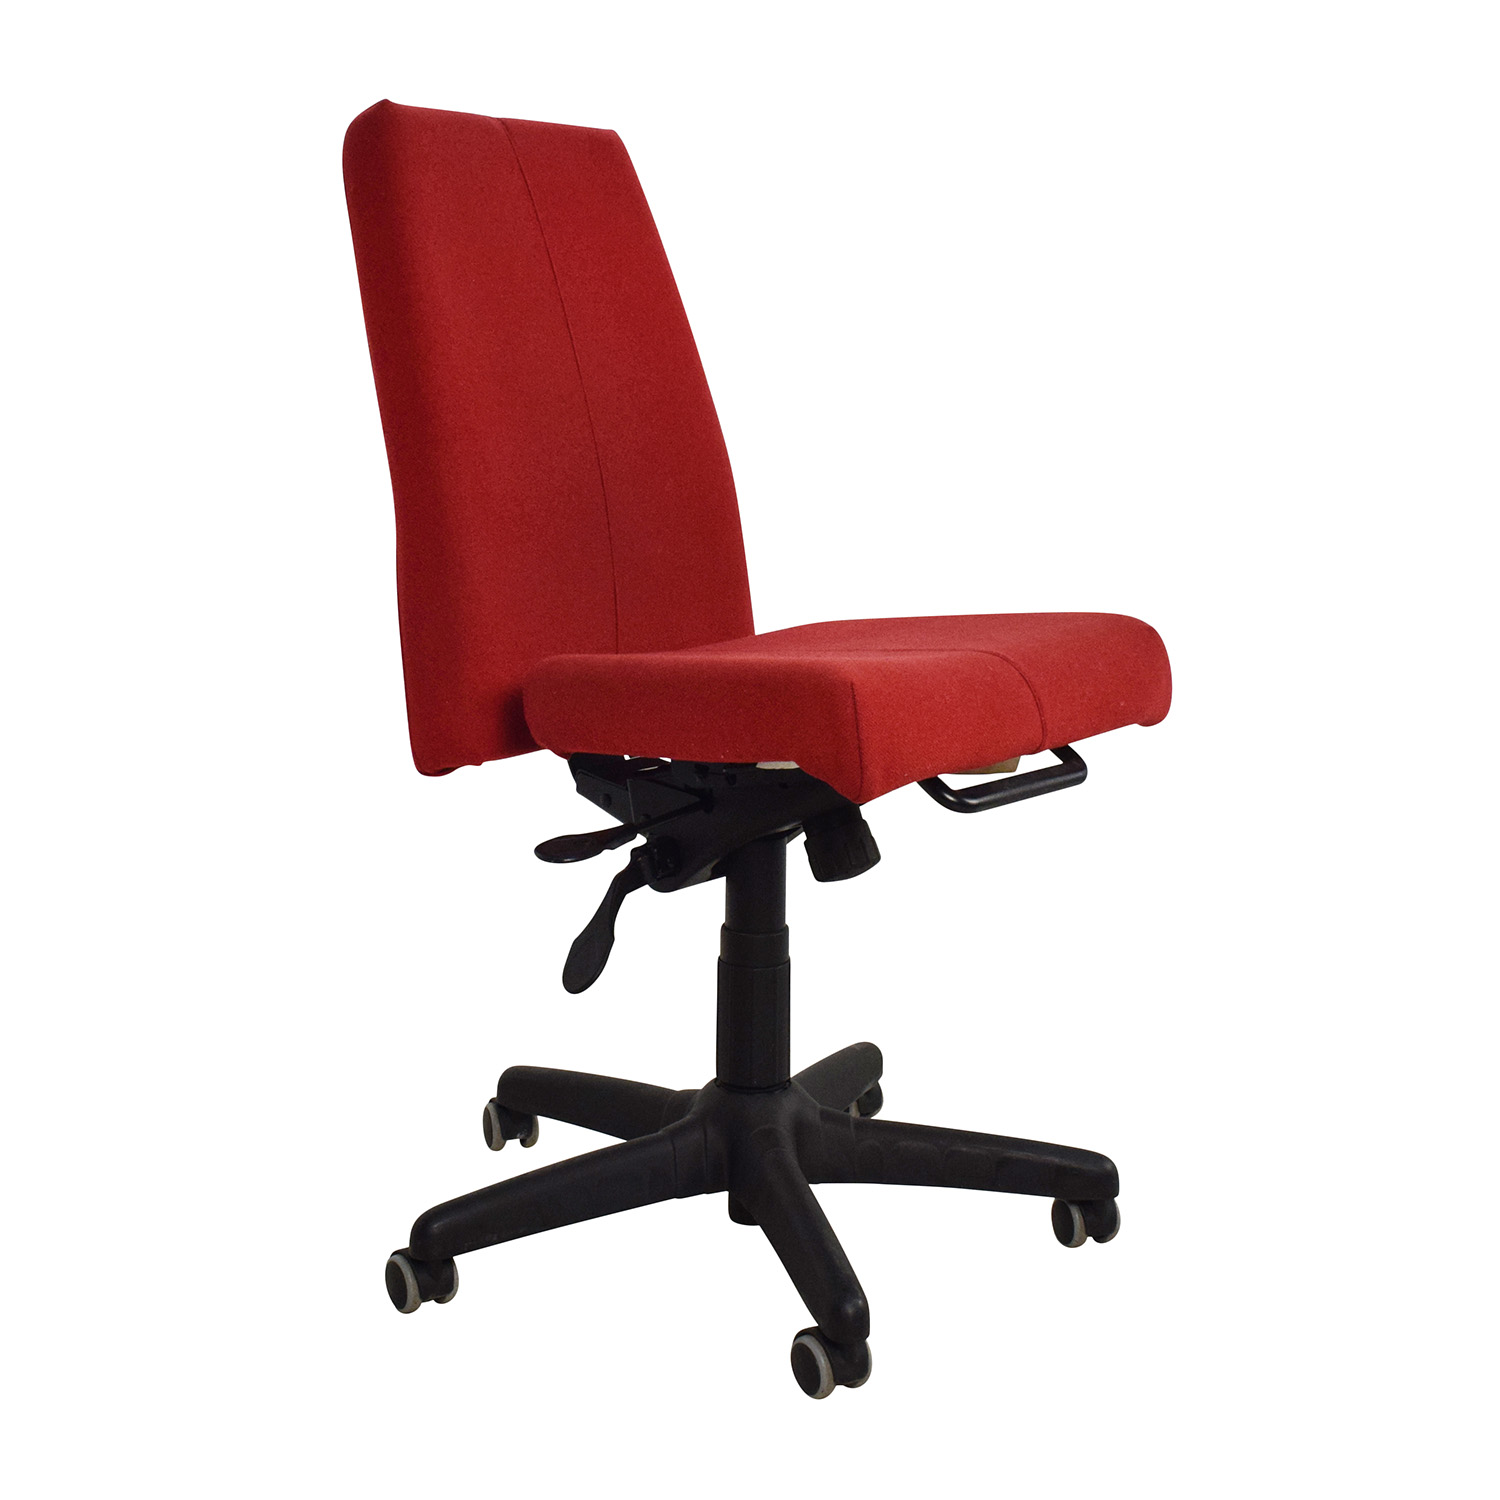 90 off red armless adjustable home office chair chairs for Armless office chairs